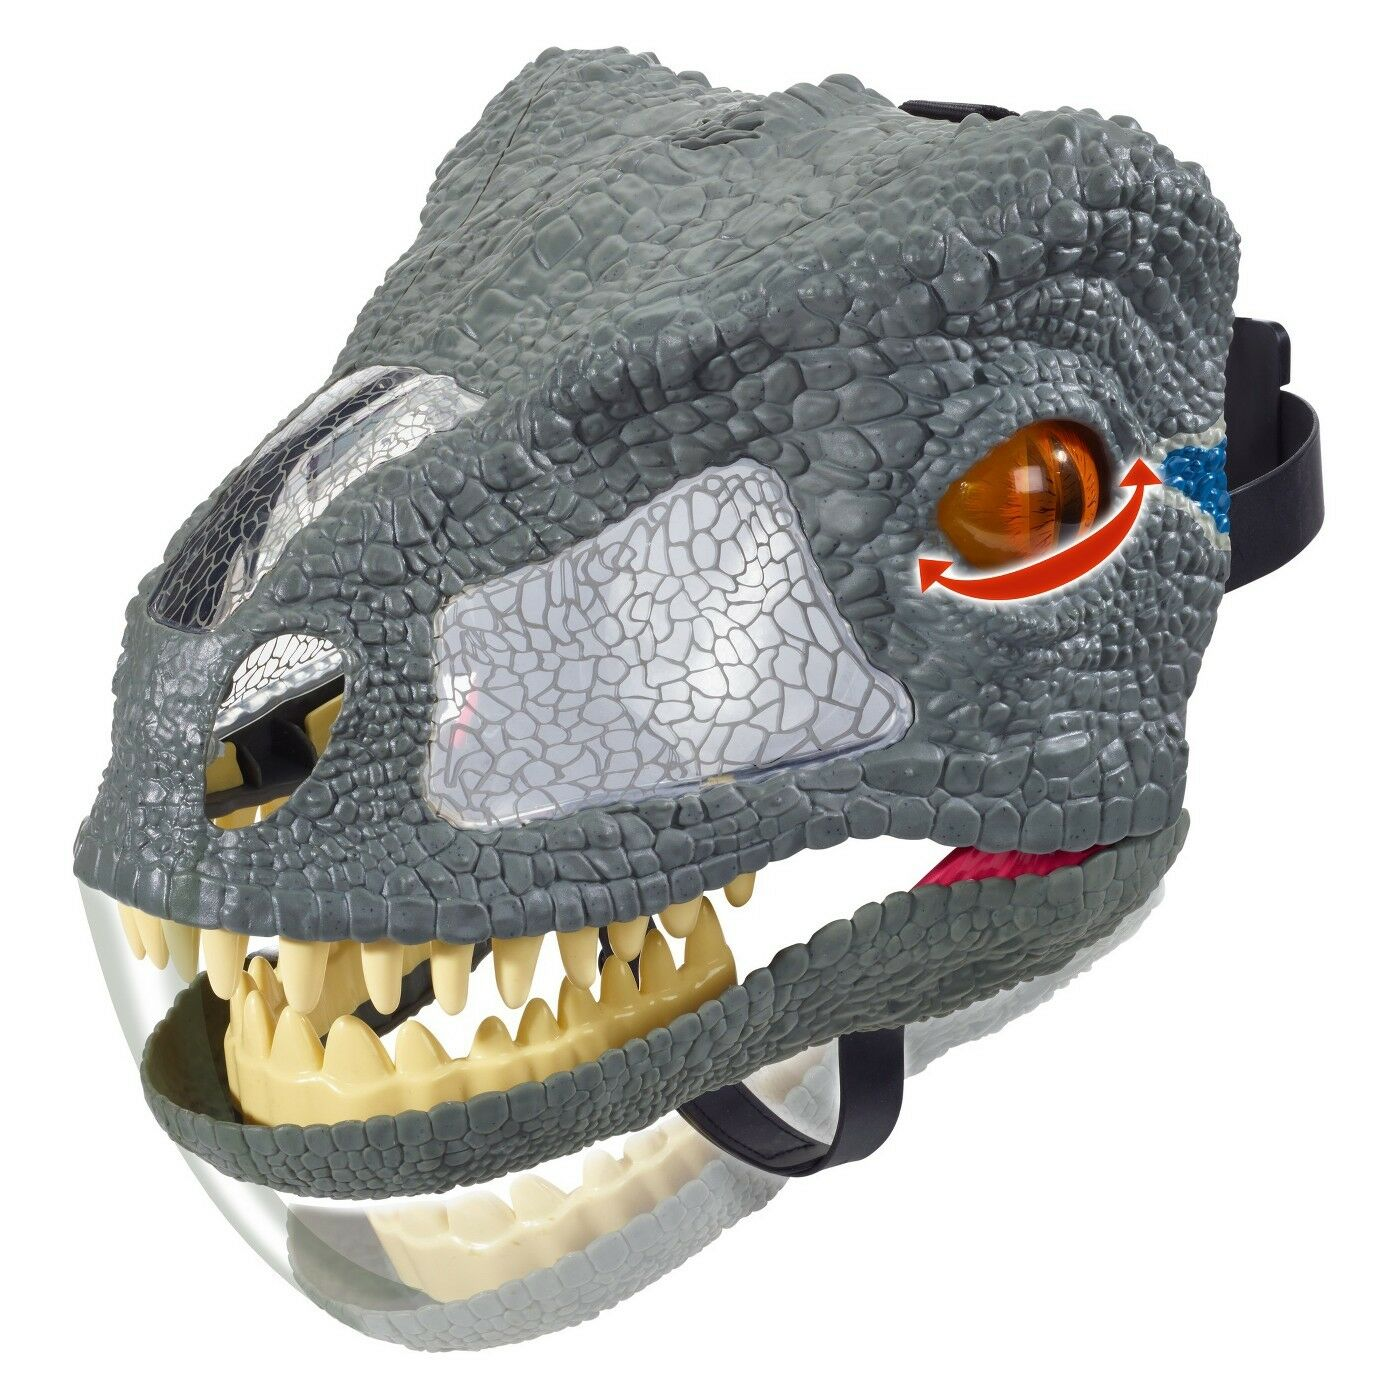 Jurassic World Chomp 'N Roar Velociraptor Blau Mask  Brand new factory sealed